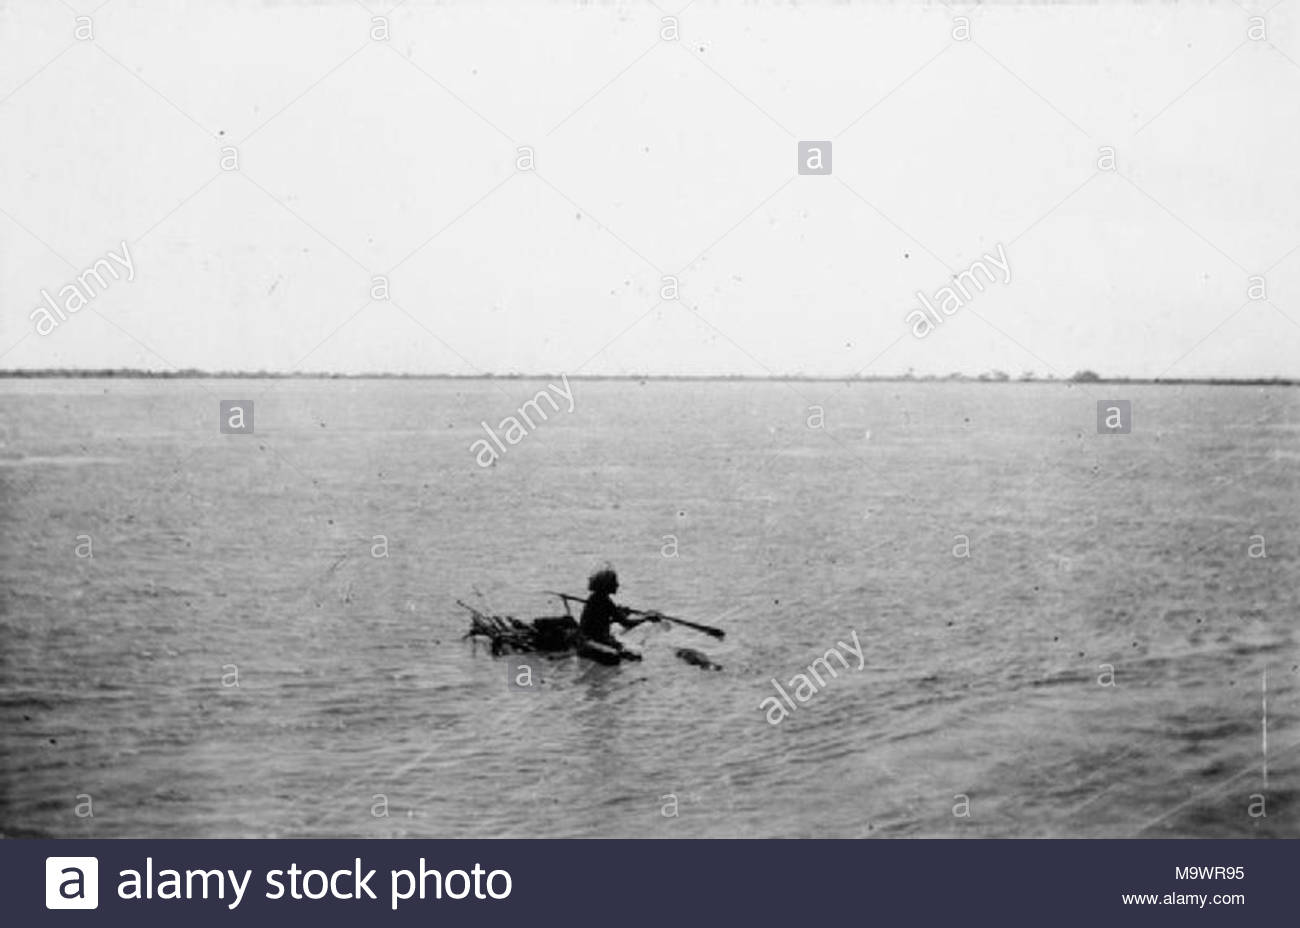 home made raft stock photos & home made raft stock images - alamy